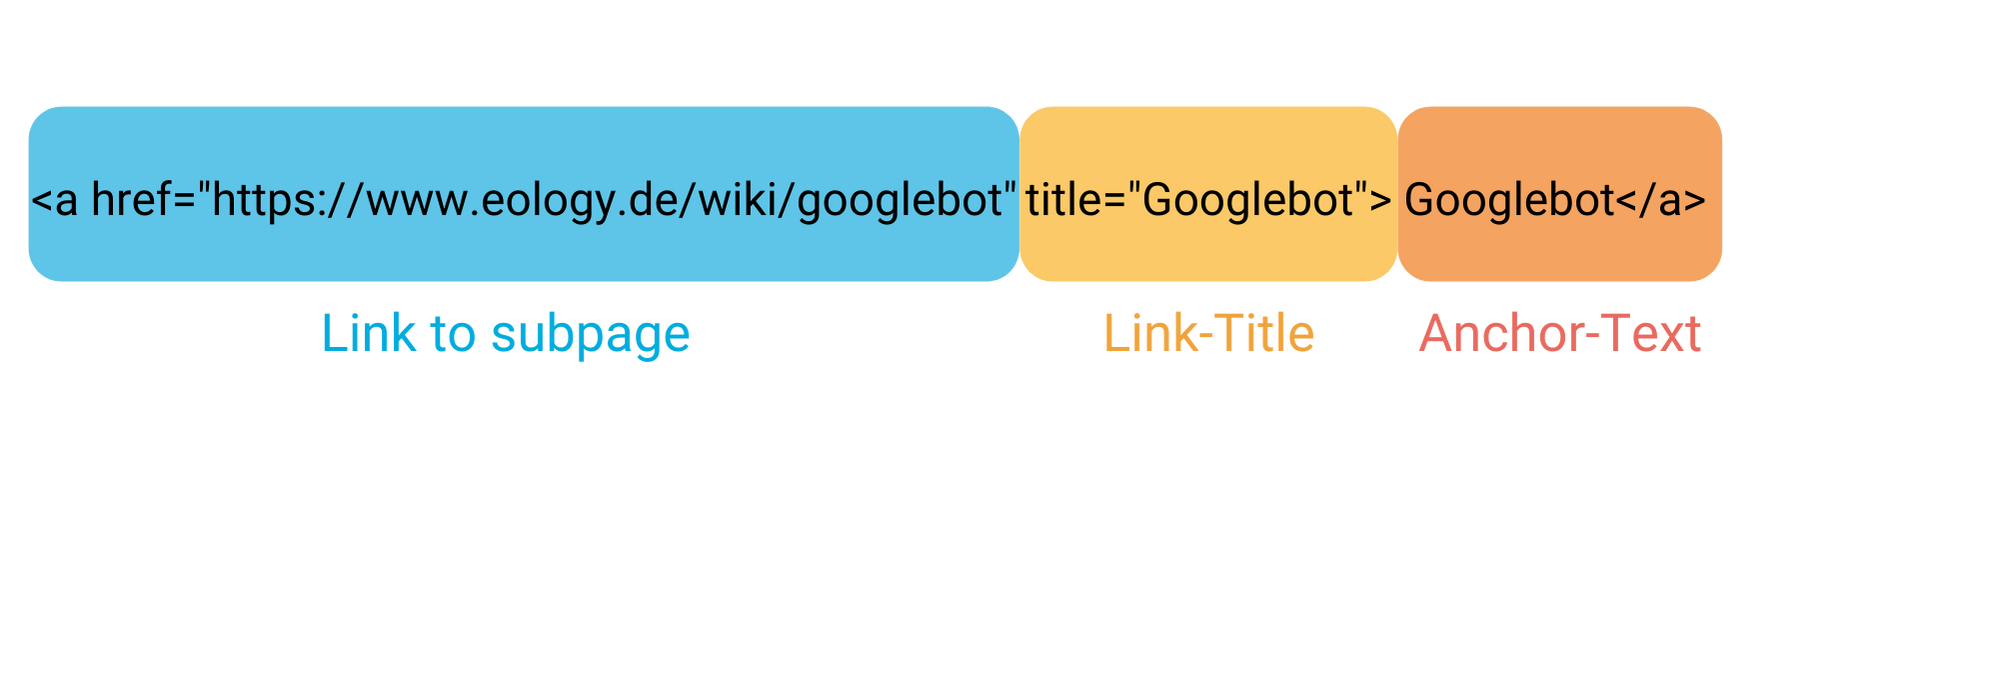 Representation of the individual components of an internal link with link to the subpage, link title and anchor text.